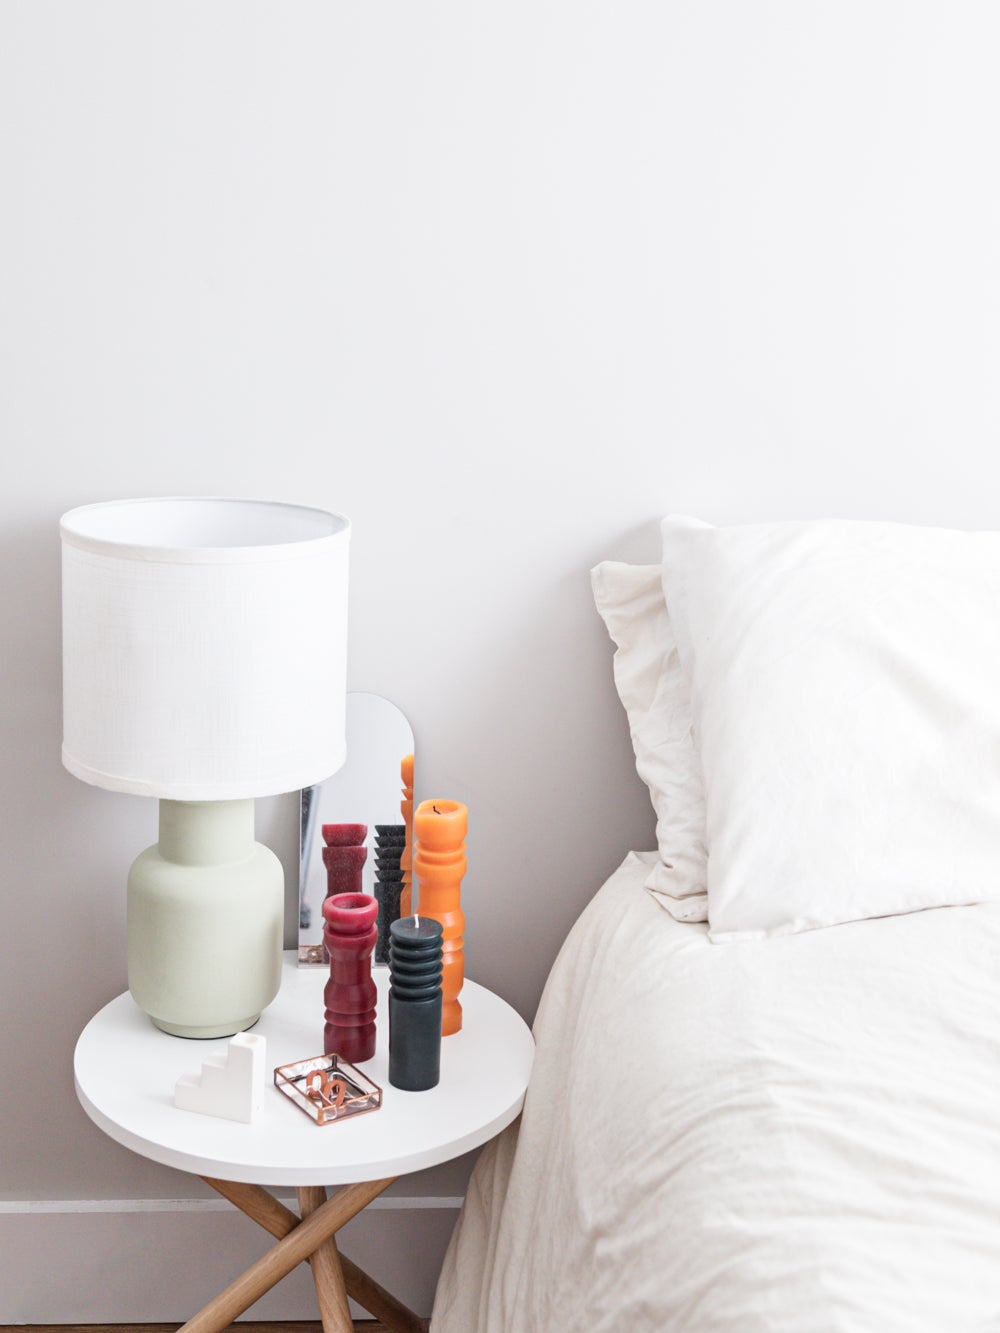 I've Tried Every Trendy Sleep Product—These 6 Actually Work